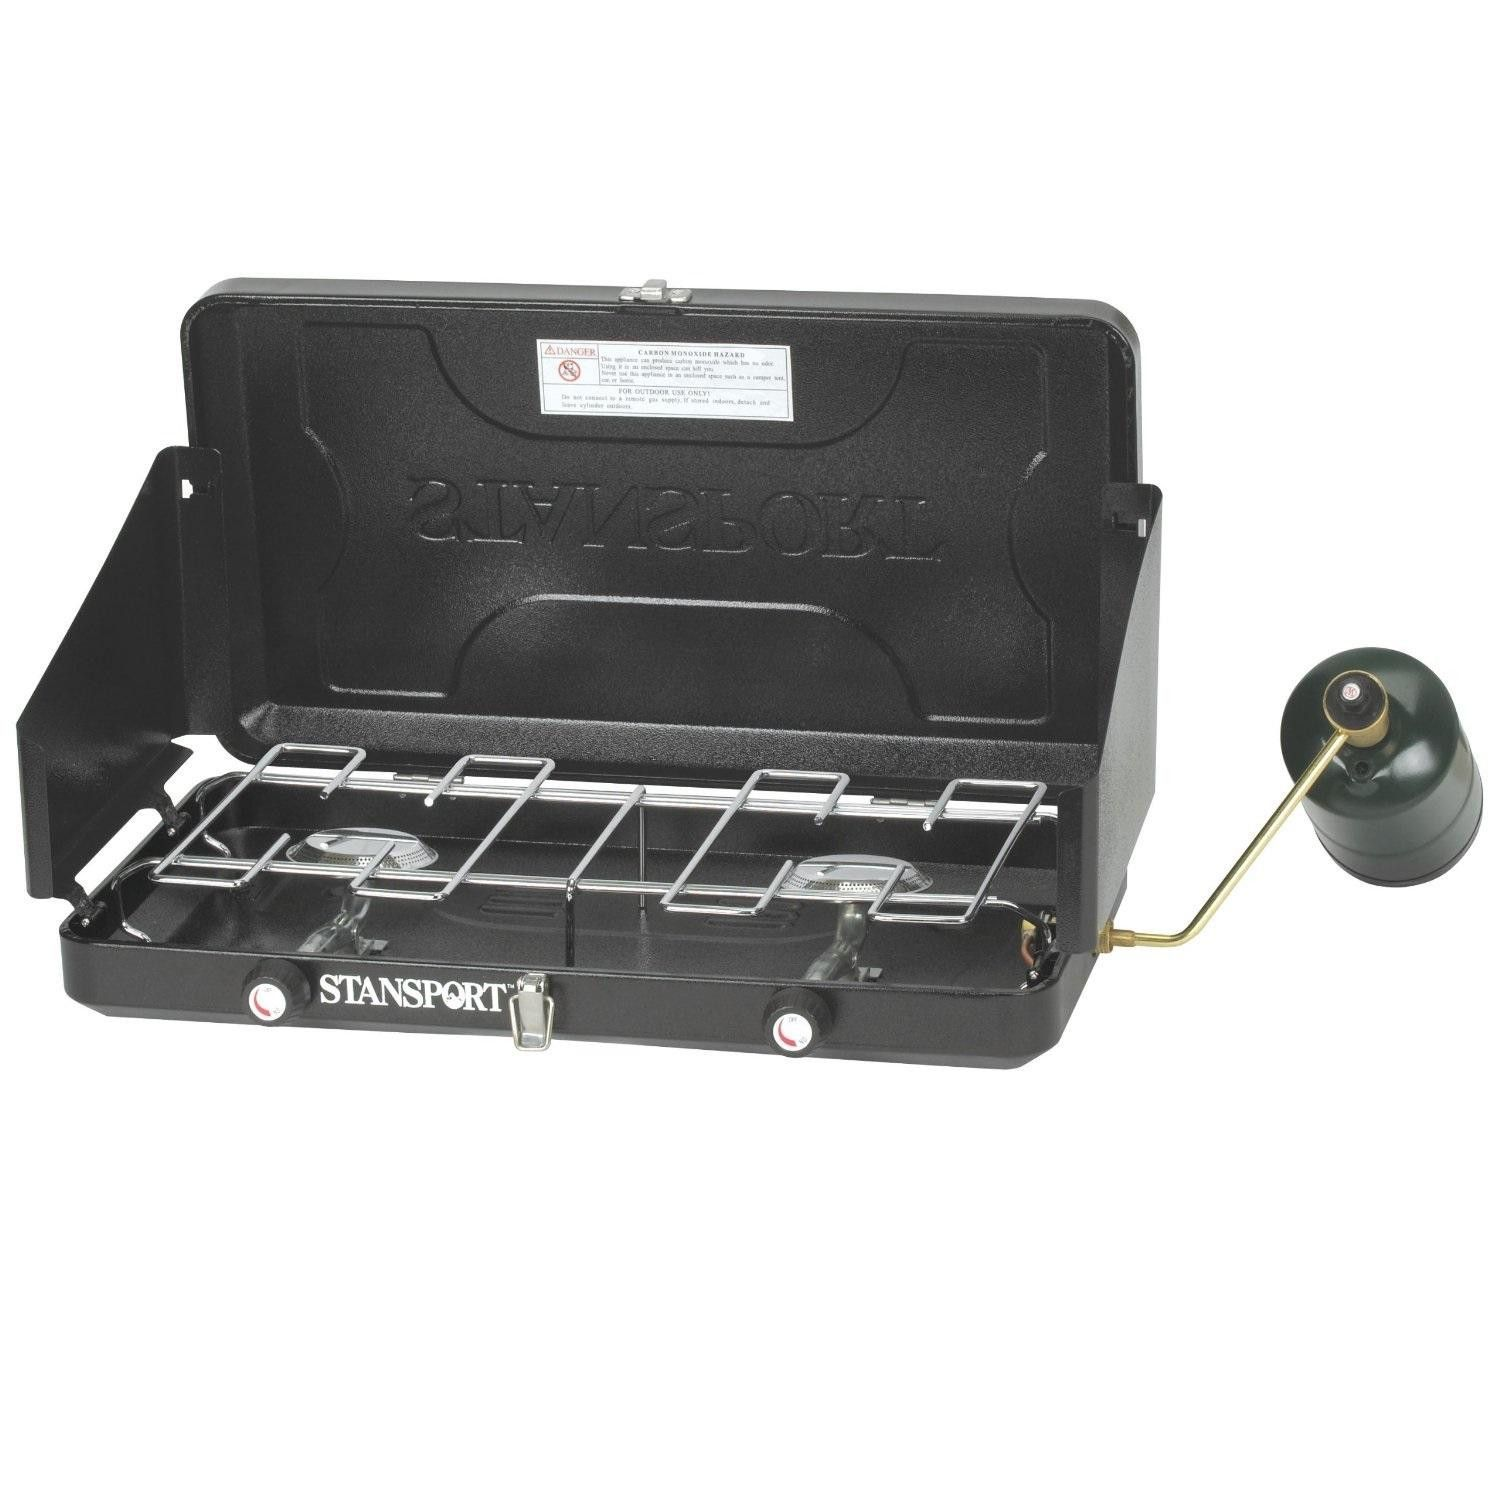 Stansport twoburner regulated propane stove propane smoker